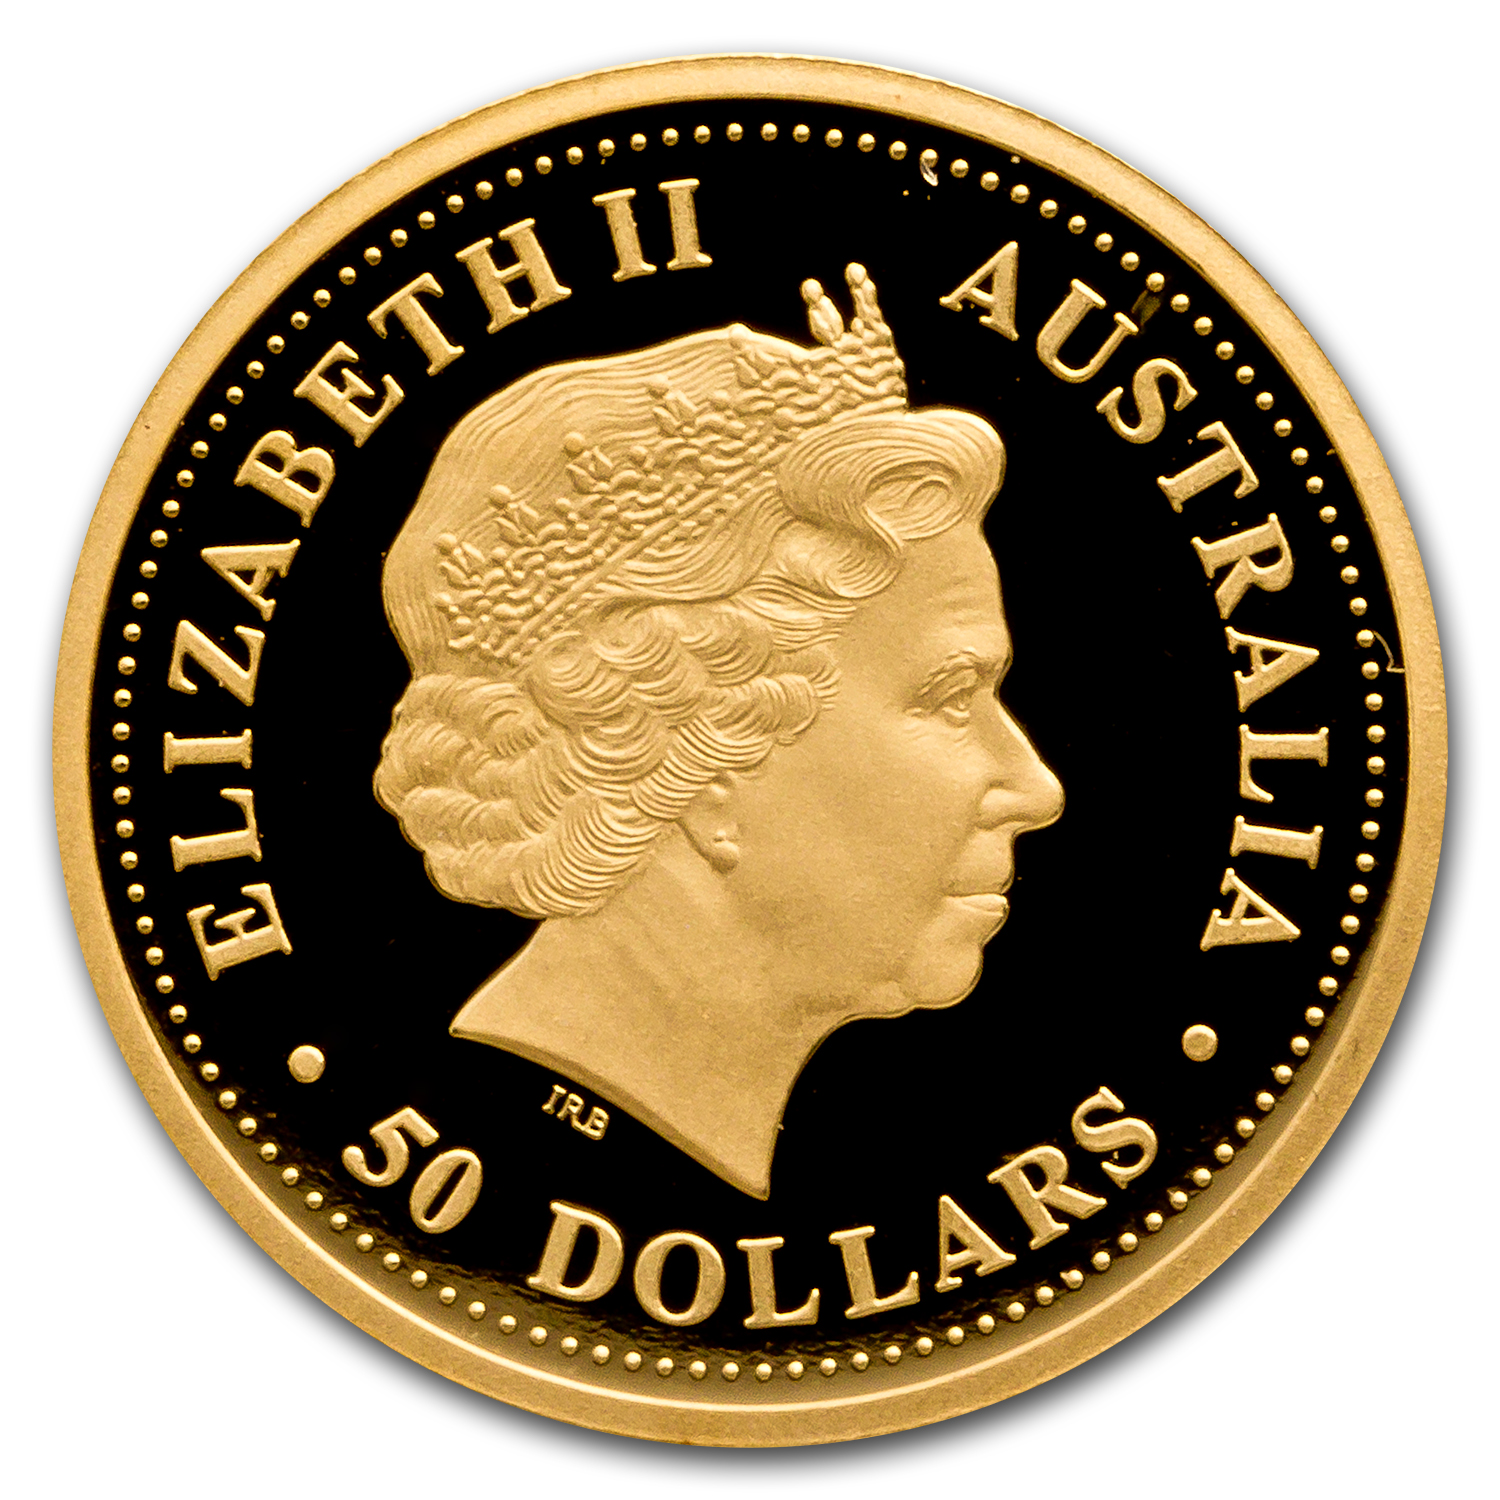 1999 1/2 oz Australian Proof Gold Nugget